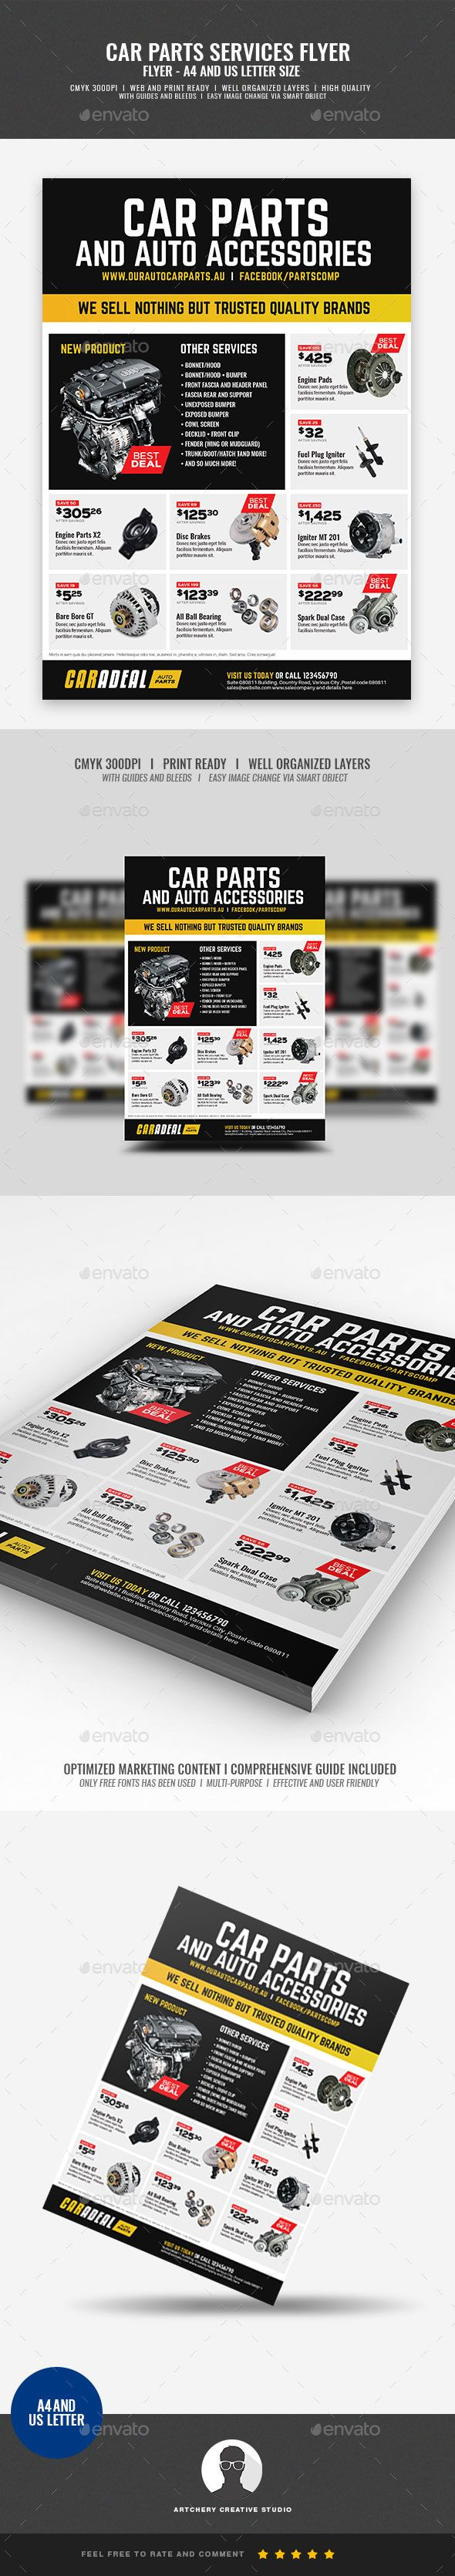 Auto Car Spare Parts Flyer #car system #car engine  • Download here → https://graphicriver.net/item/auto-car-spare-parts-flyer/21231887?ref=pxcr